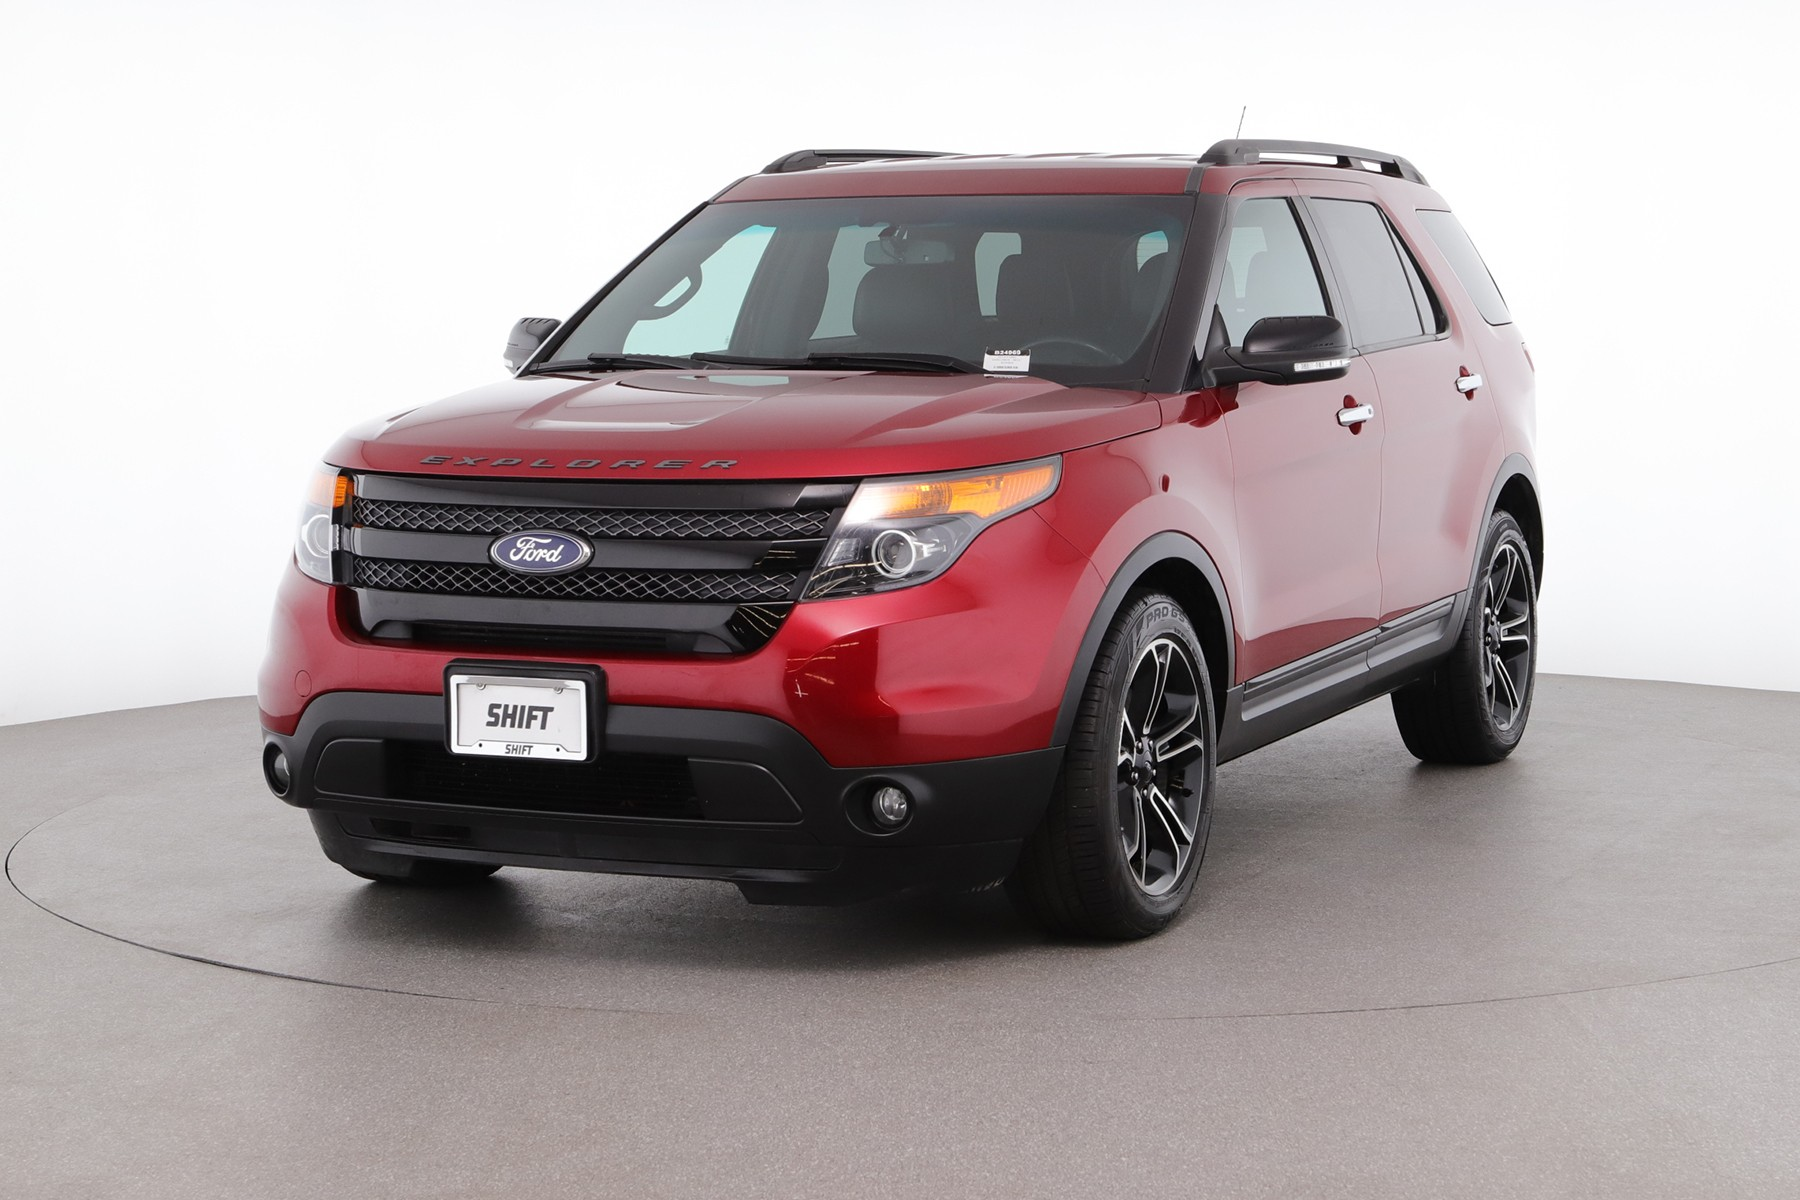 2014 Ford Explorer Sport (from $22,700)